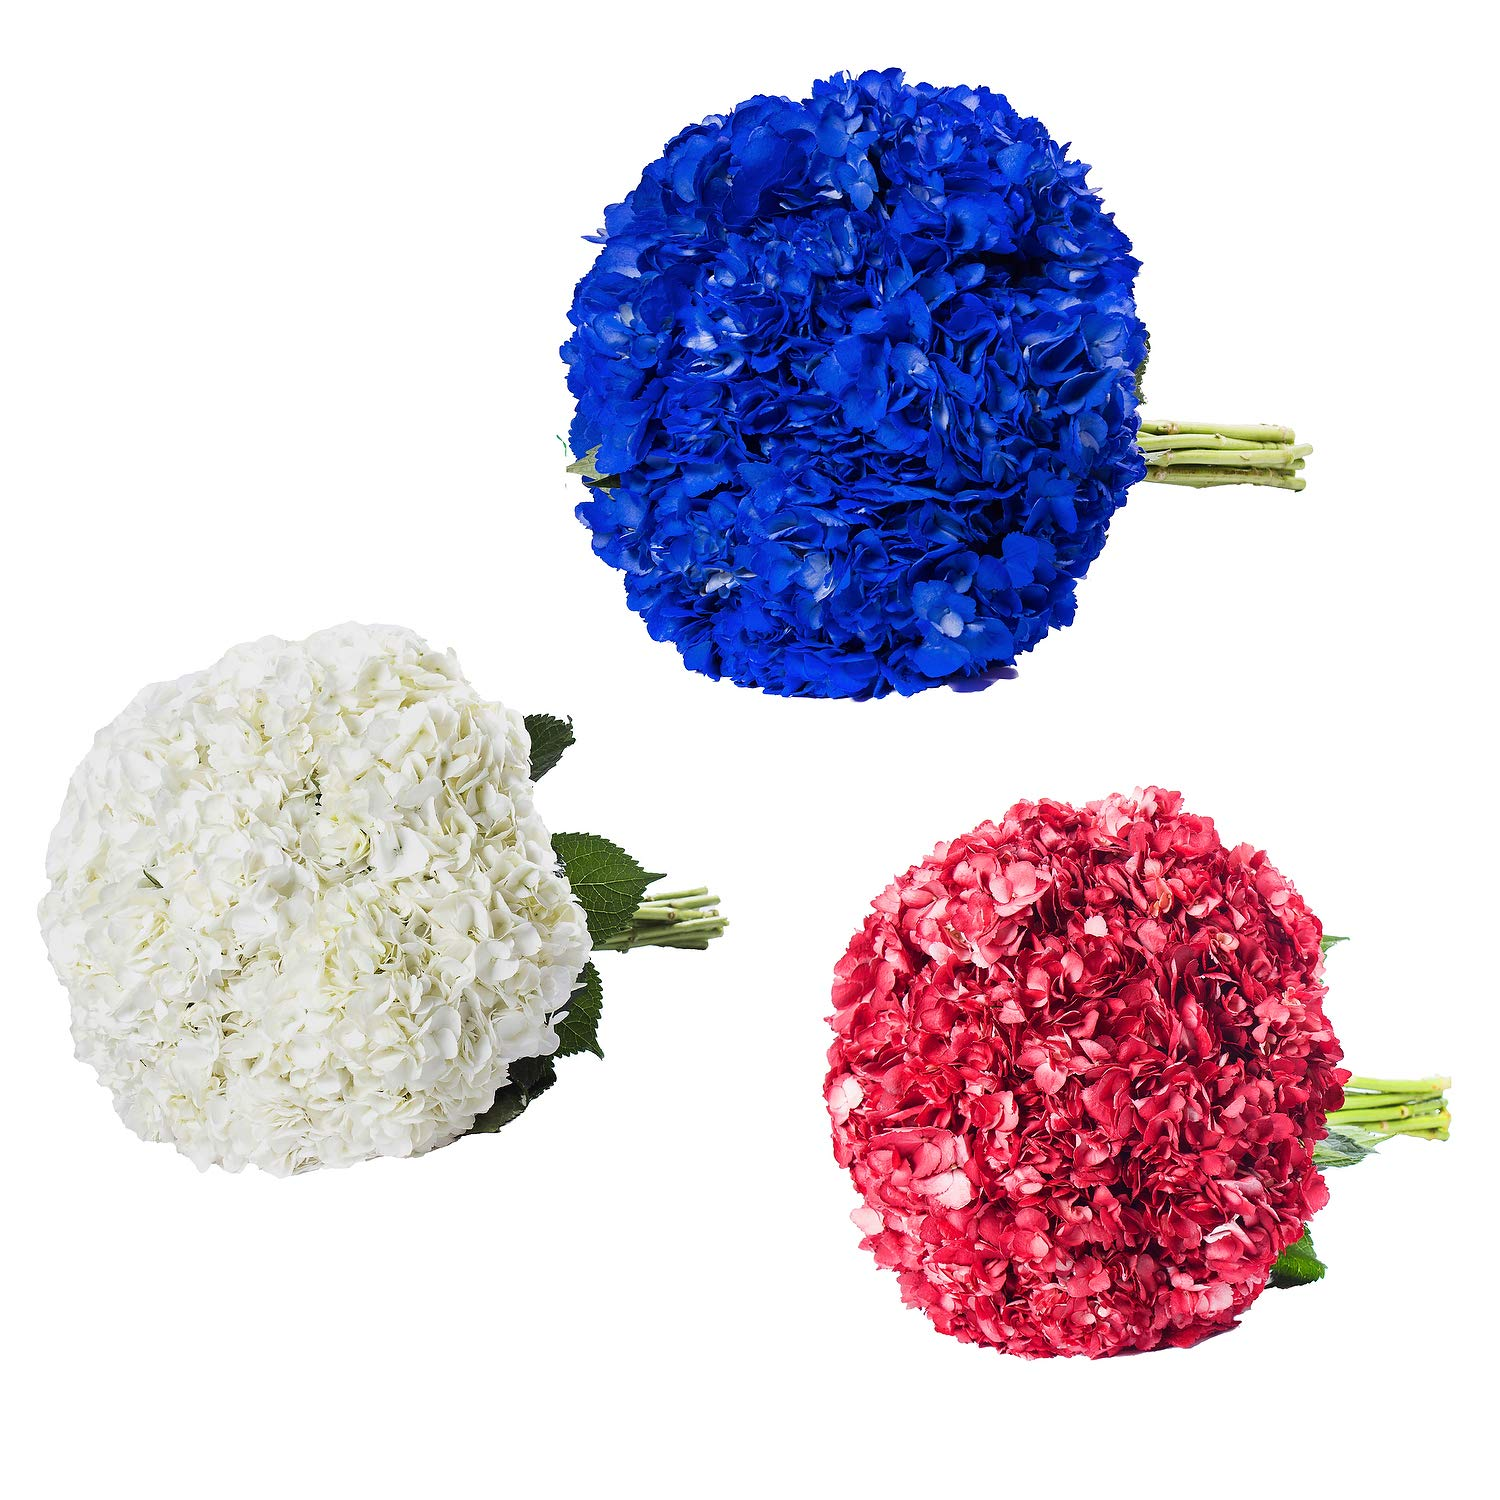 Farm Fresh Natural Painted White, Red & Blue Hydrangeas - Pack 15 by Bloomingmore (Image #2)